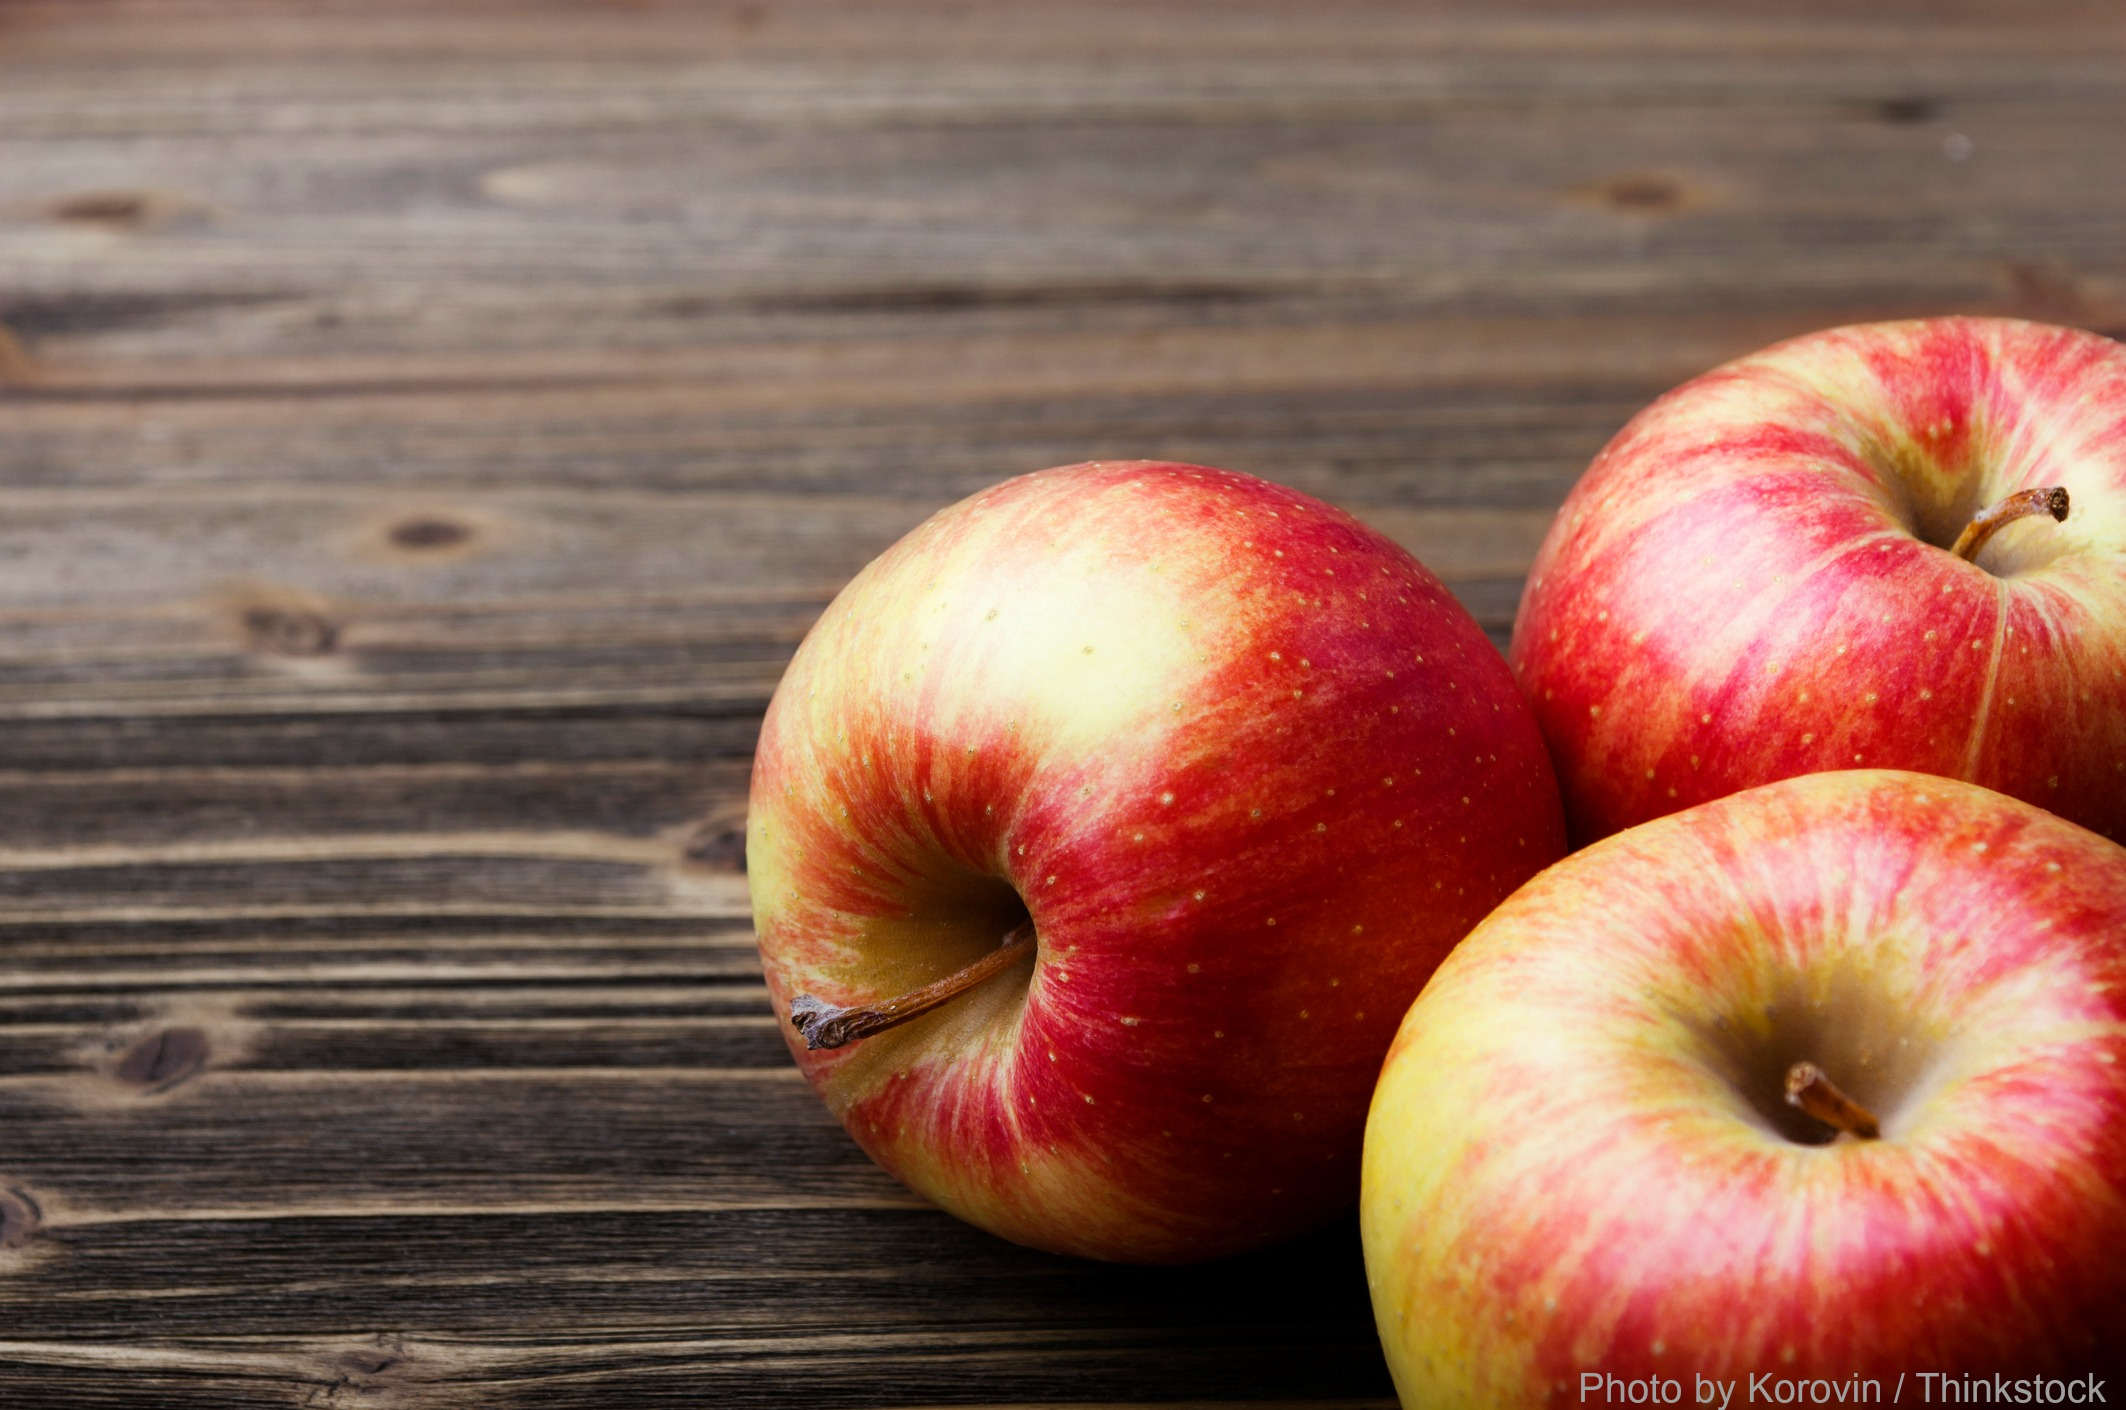 Enjoy fresh NC apples at the Hendersonville Apple Festival